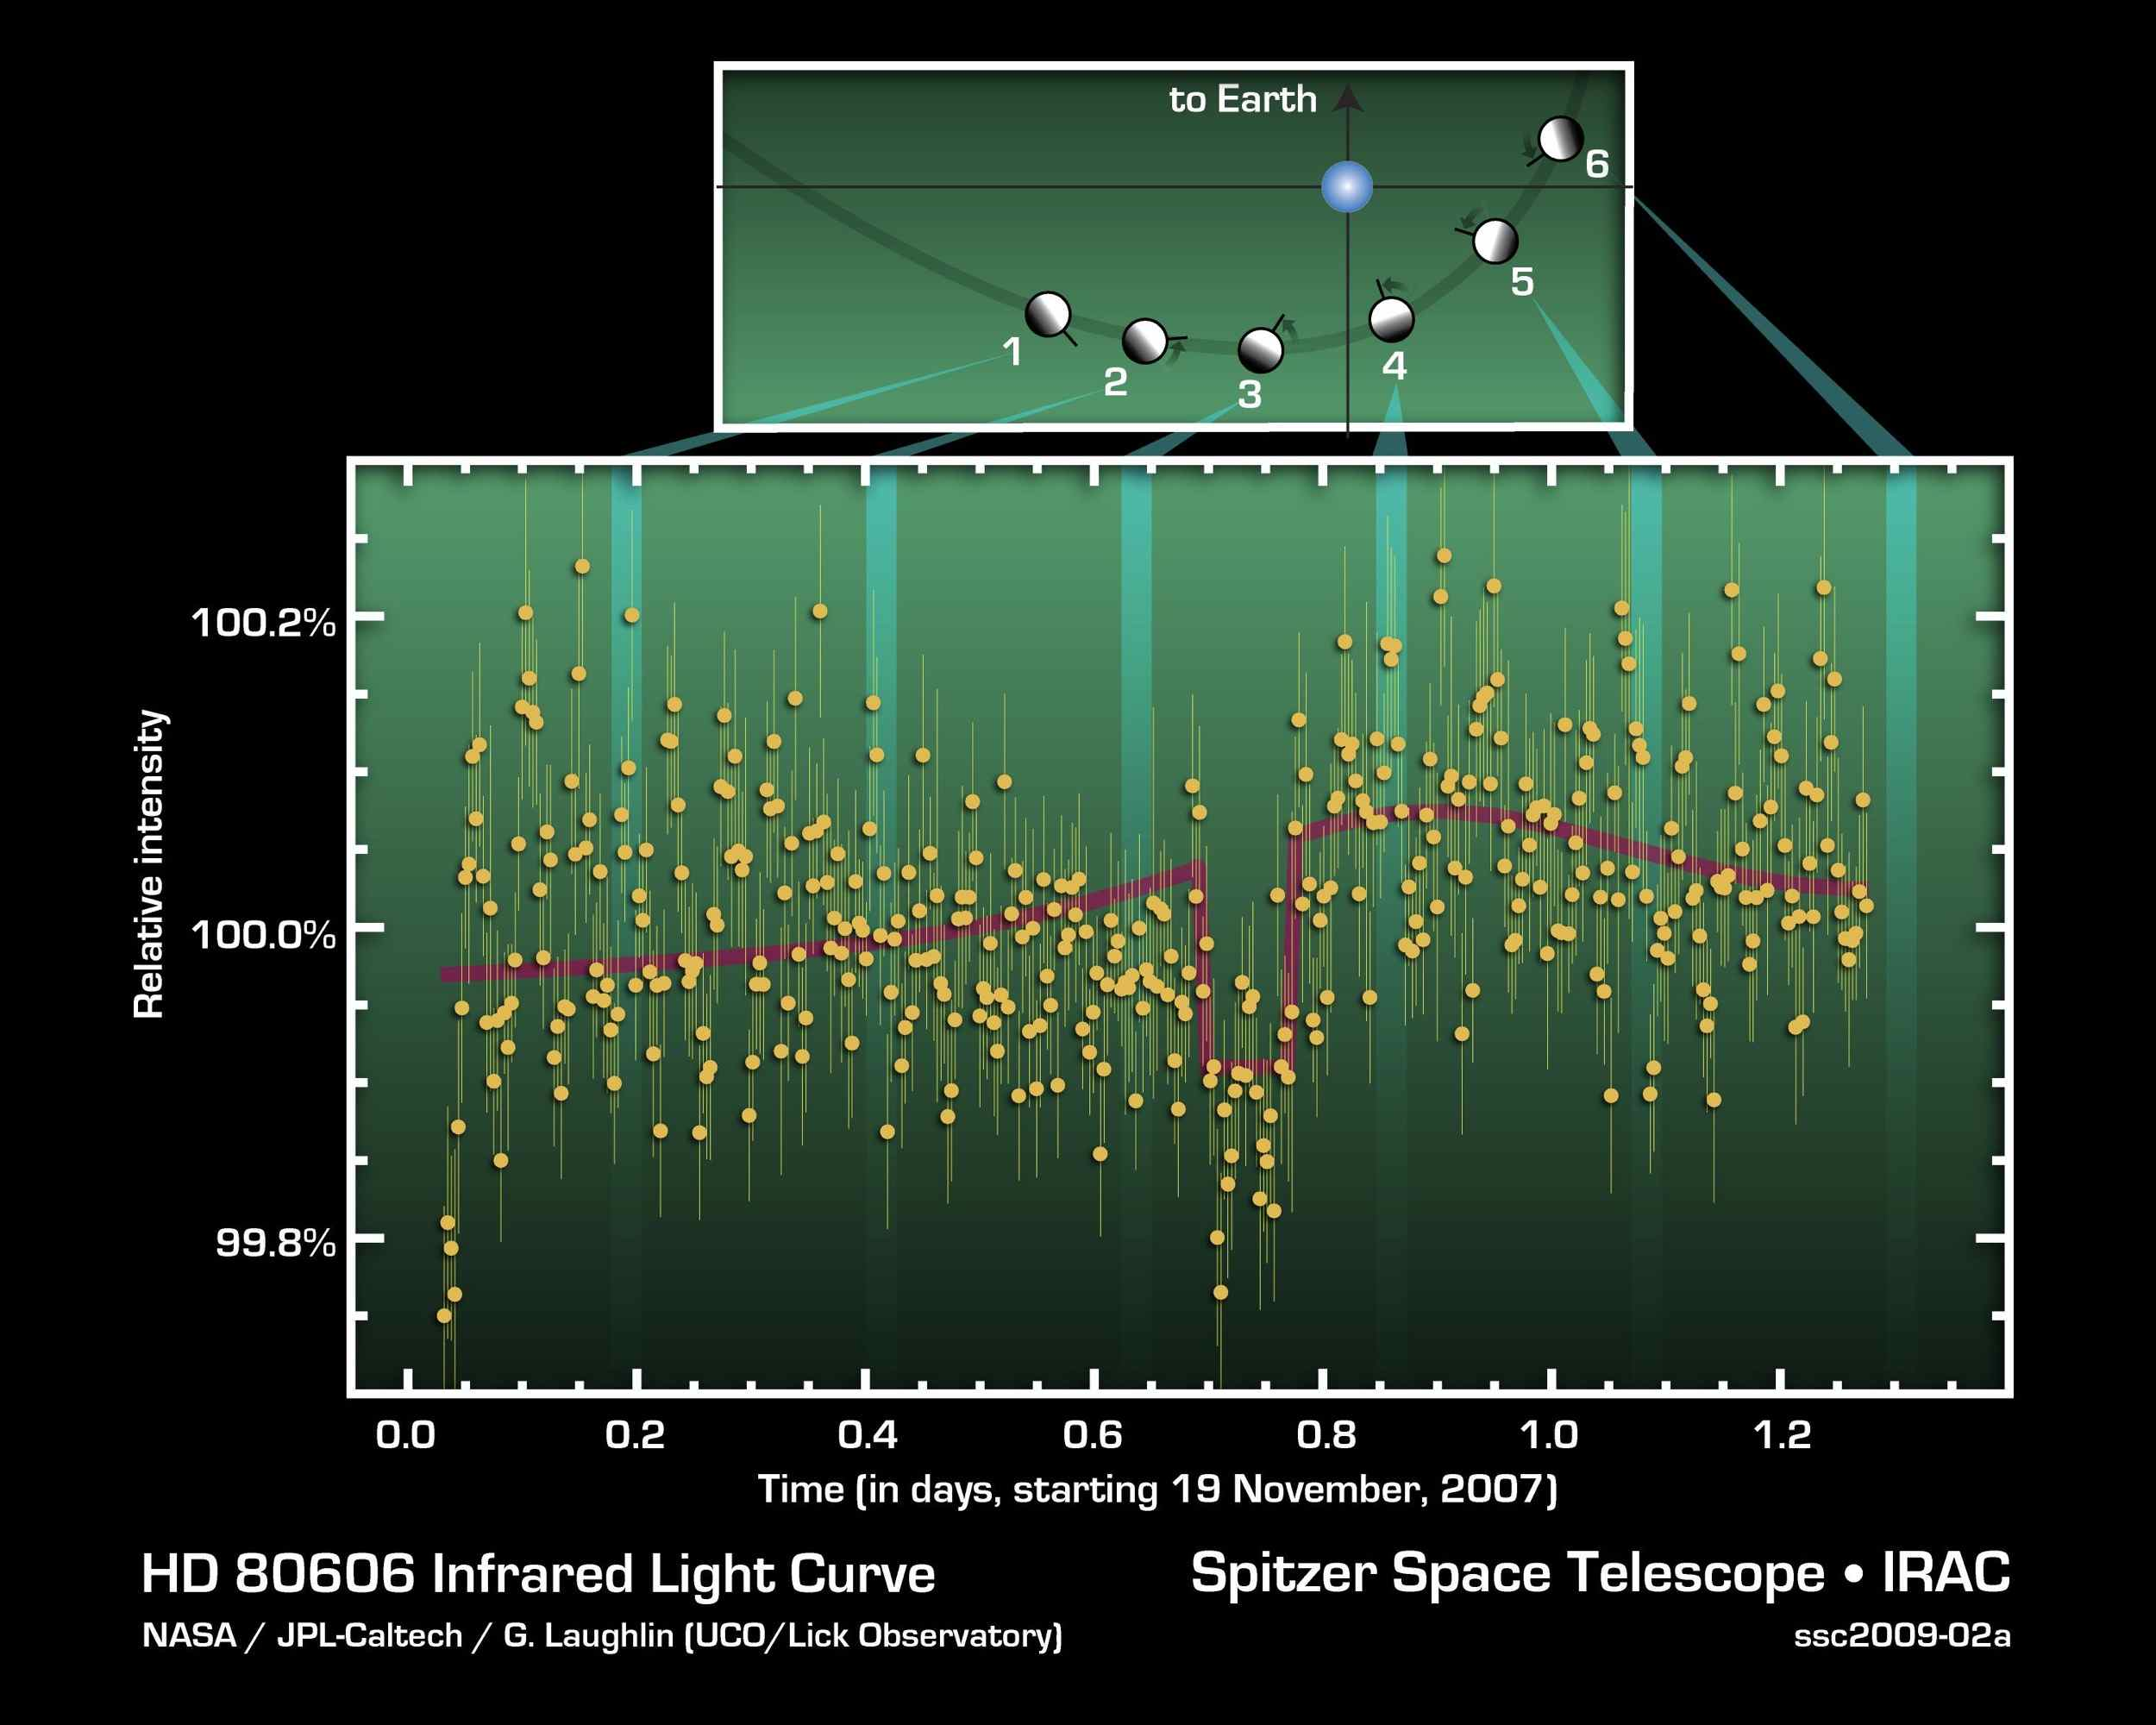 This figure charts 30 hours of observations taken by NASA's Spitzer Space Telescope of a strongly irradiated exoplanet (an planet orbiting a star beyond our own). Spitzer measured changes in the planet's heat, or infrared light.